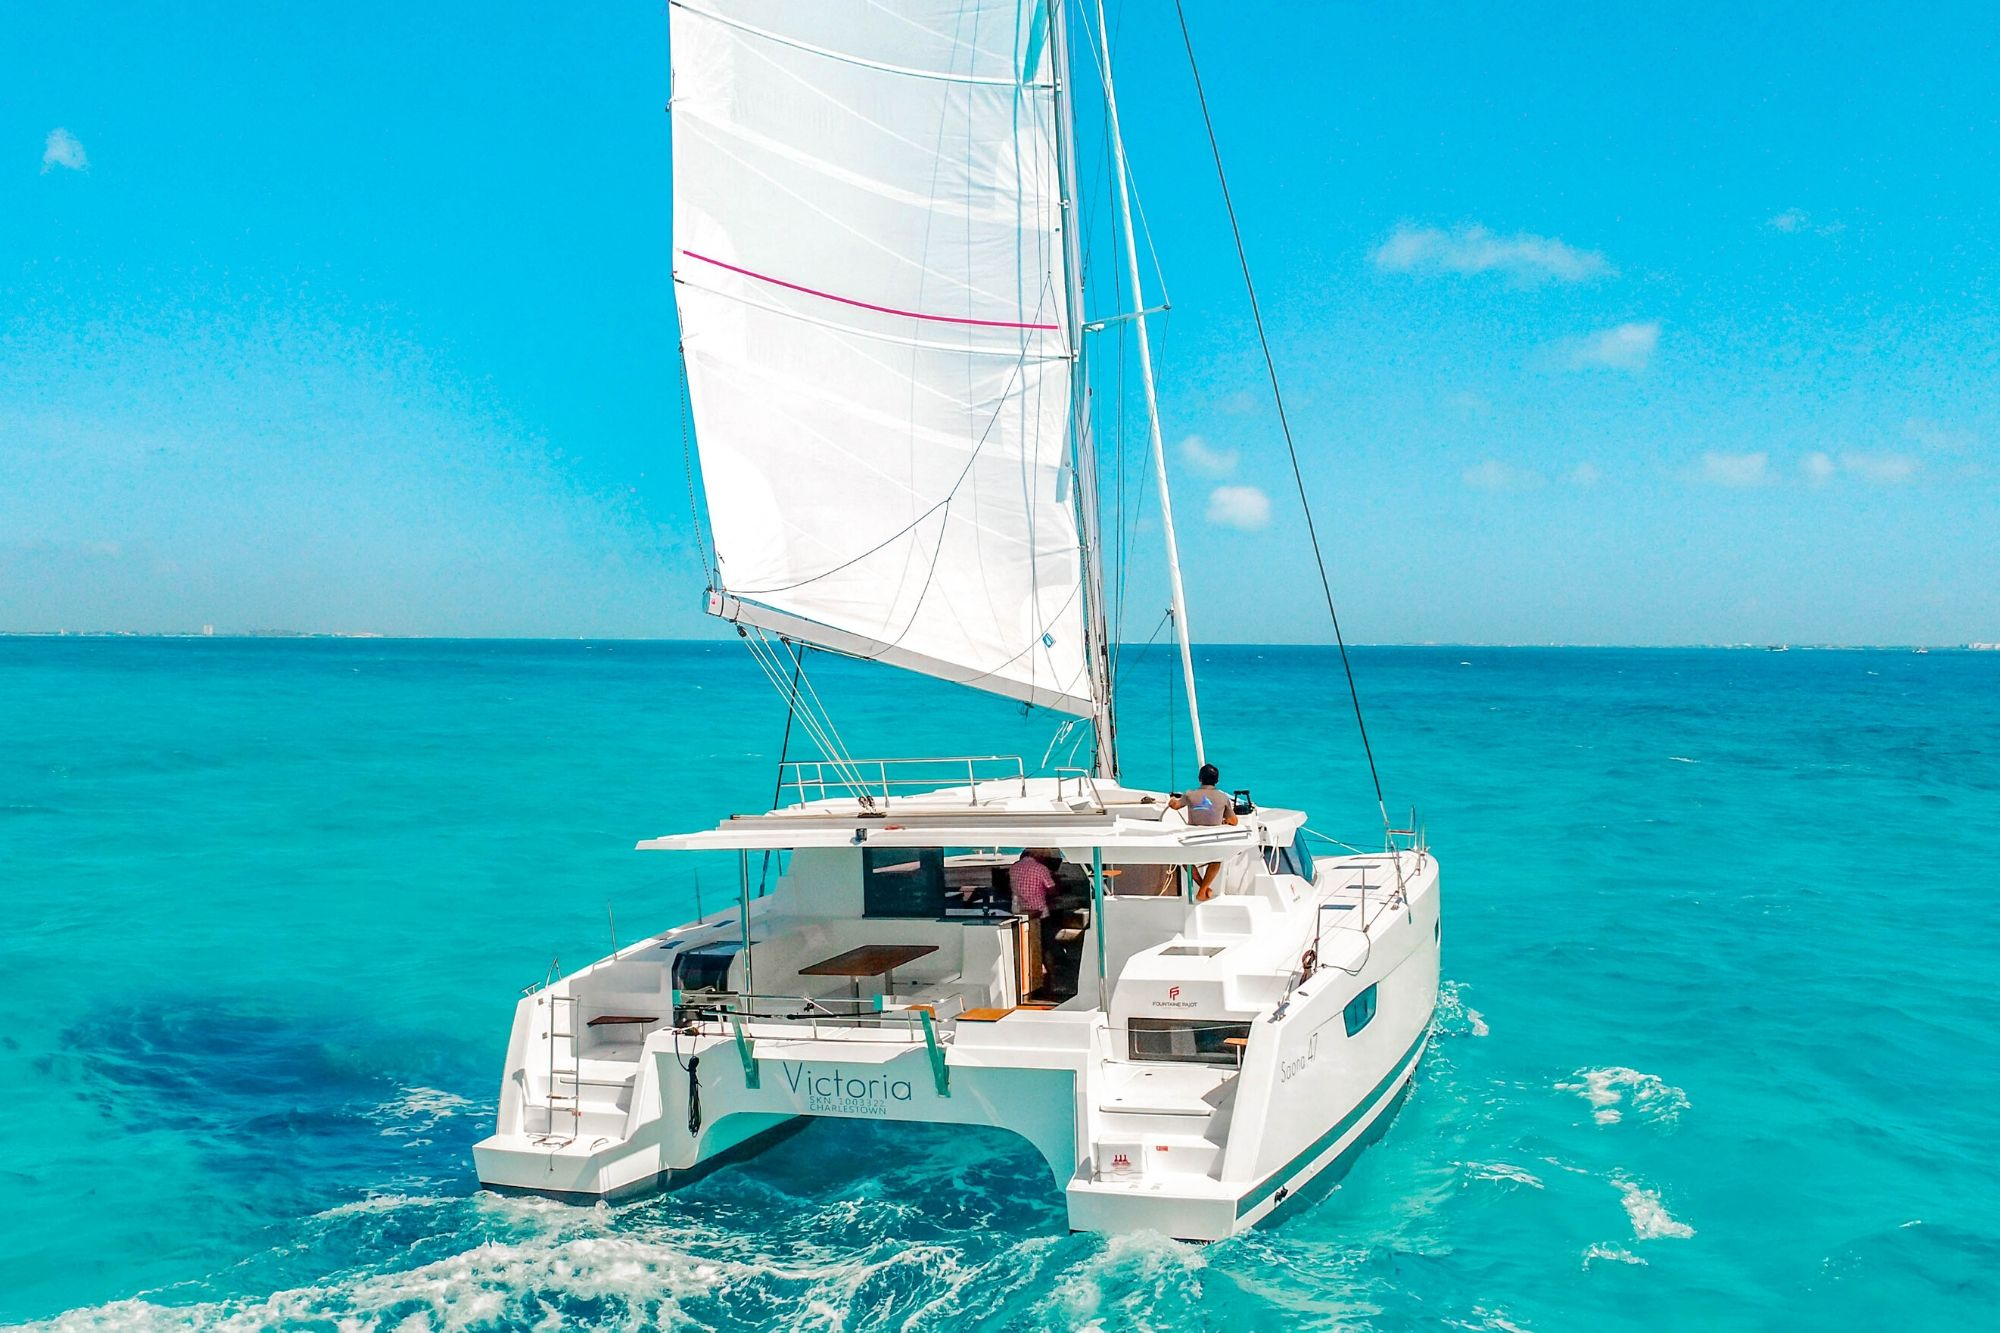 2 Private Isla Mujeres tour in catamaran - Victoria - Cancun Sailing